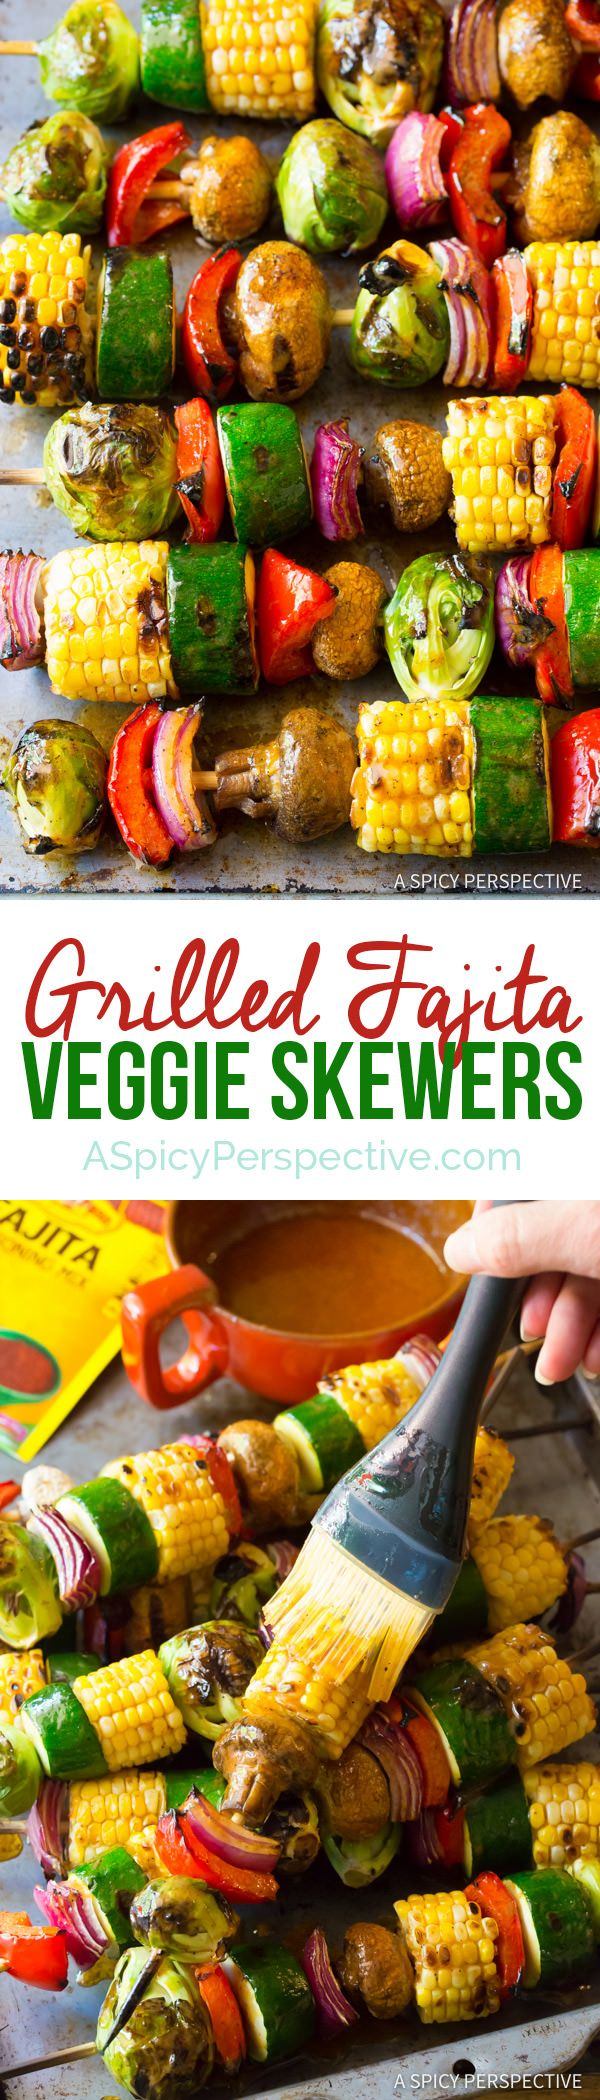 Grilled Fajita Vegetable Skewers – Lisa Misheck